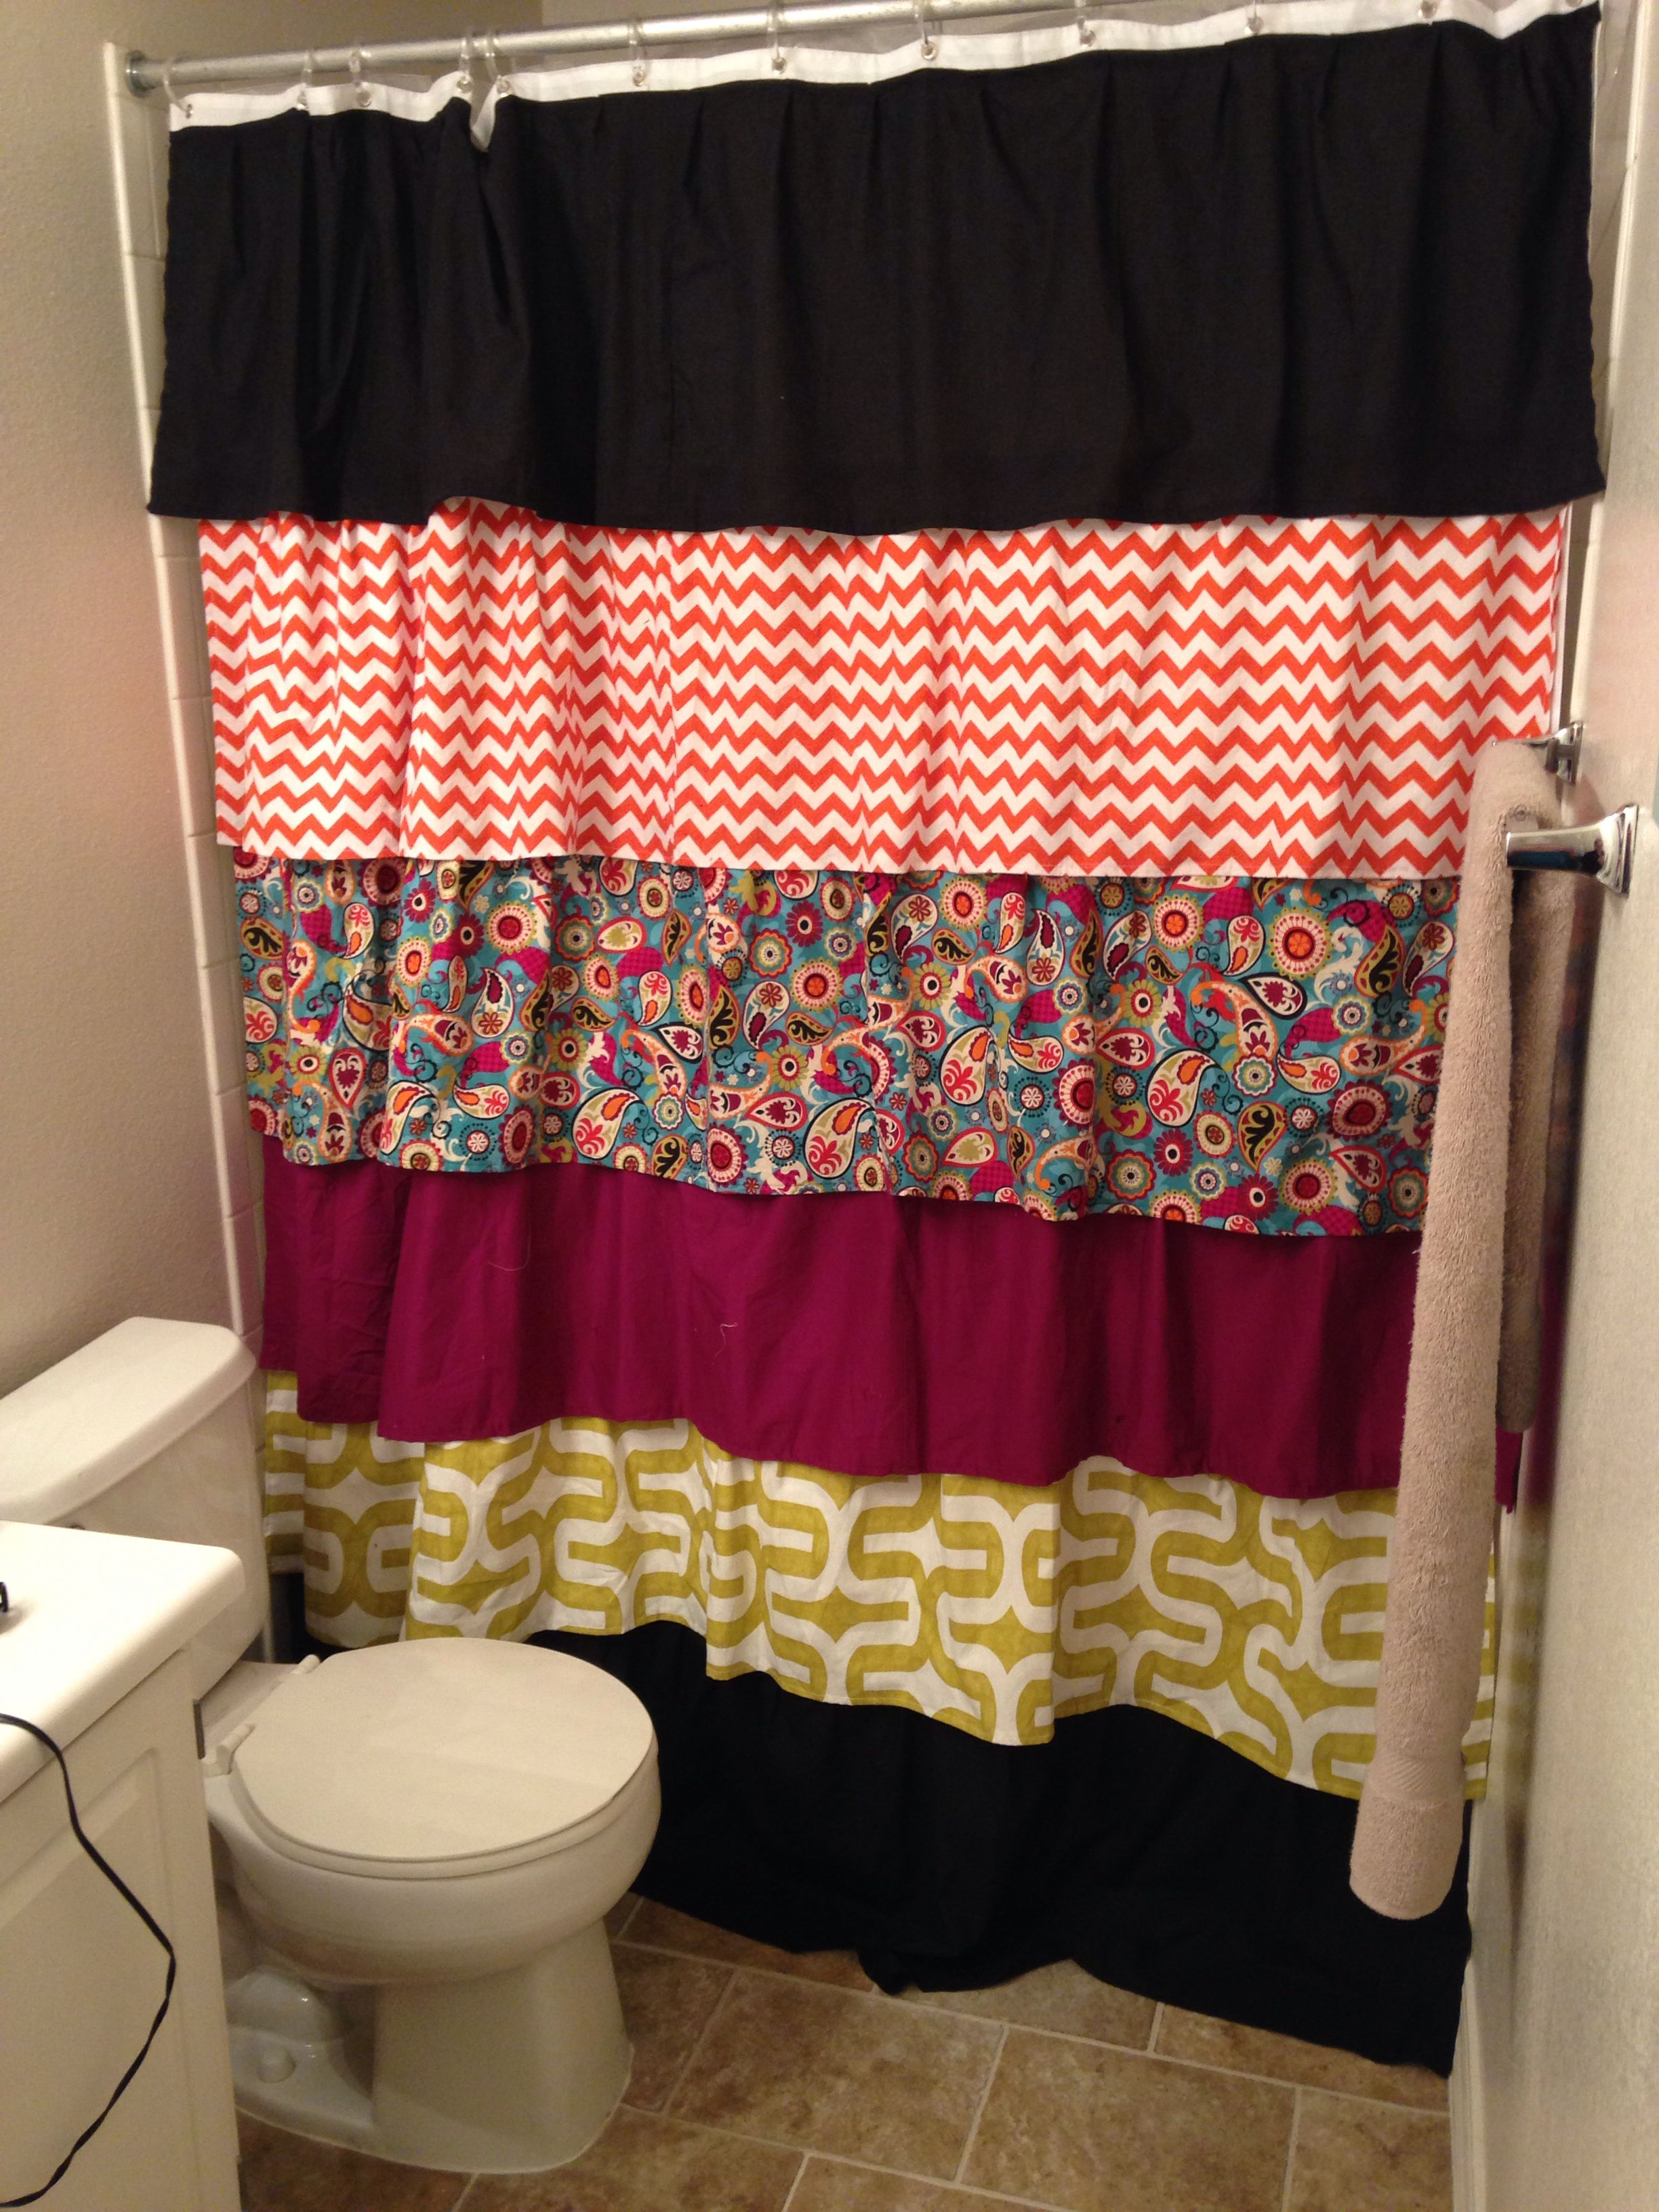 Diy ruffled shower curtain - Diy Ruffled Shower Curtain First Sewing Project Was A Success